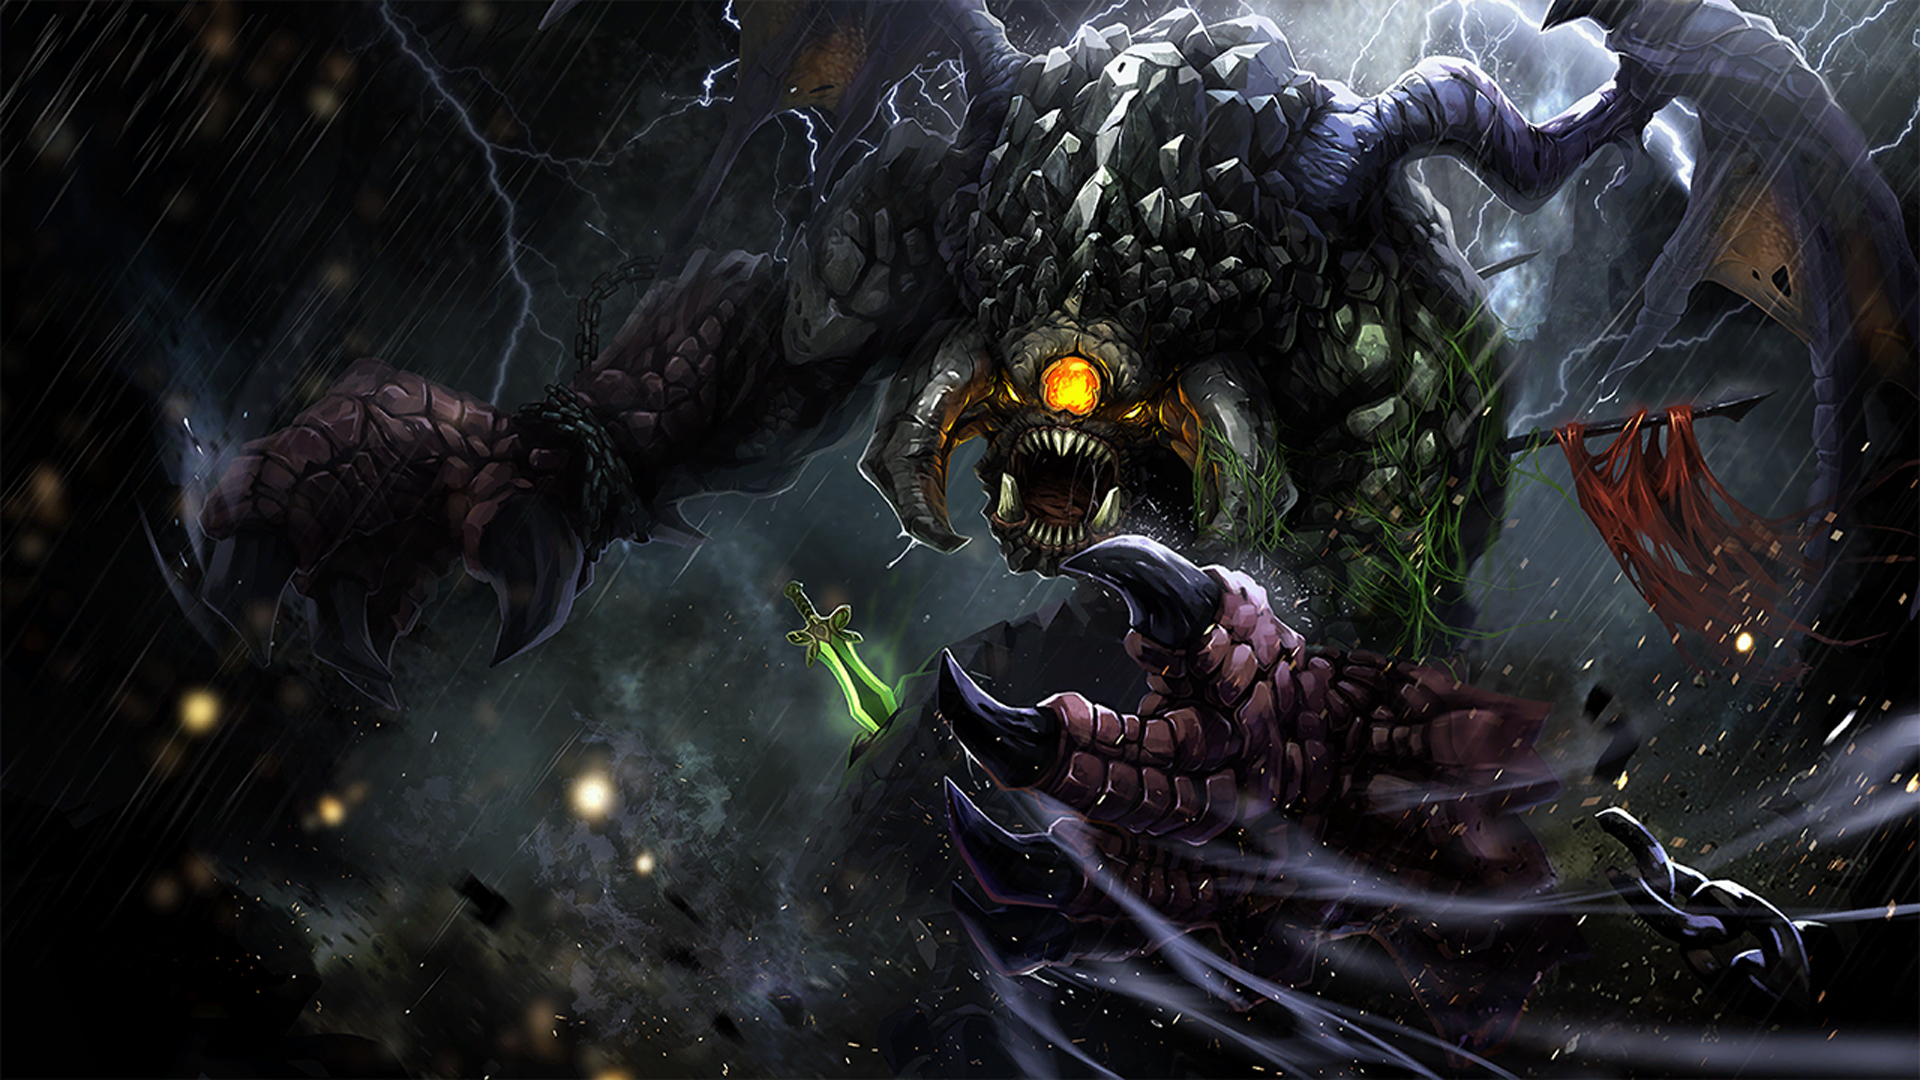 Dota 2 juggernaut wallpaper desktop background with high definition - Dota 2 Hd Wallpaper 1920x1080 Wallpapersafari